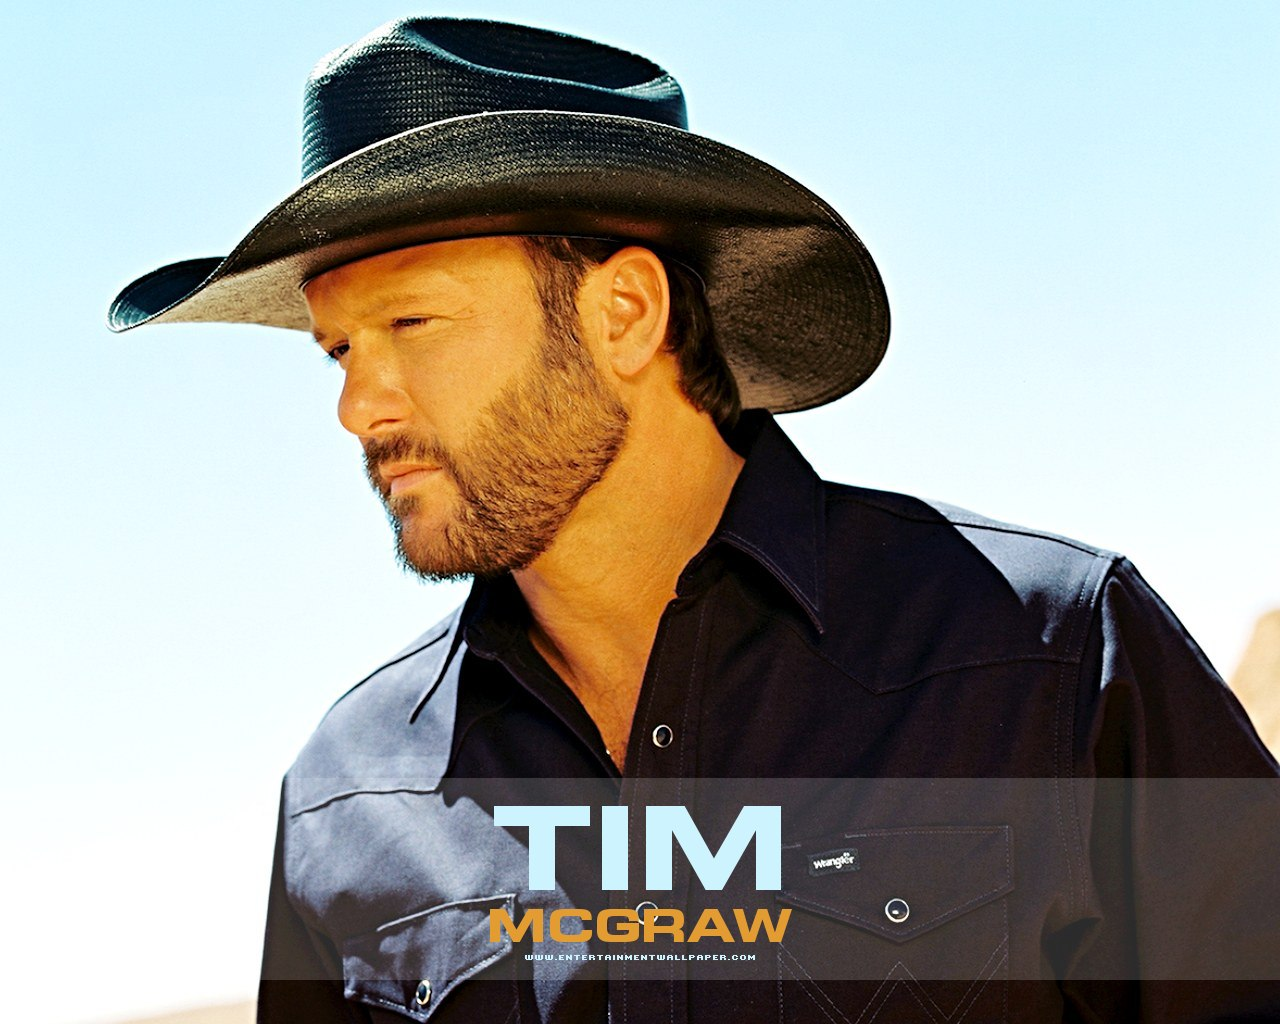 ... will forever be happy that Tim McGraw did not follow in his father